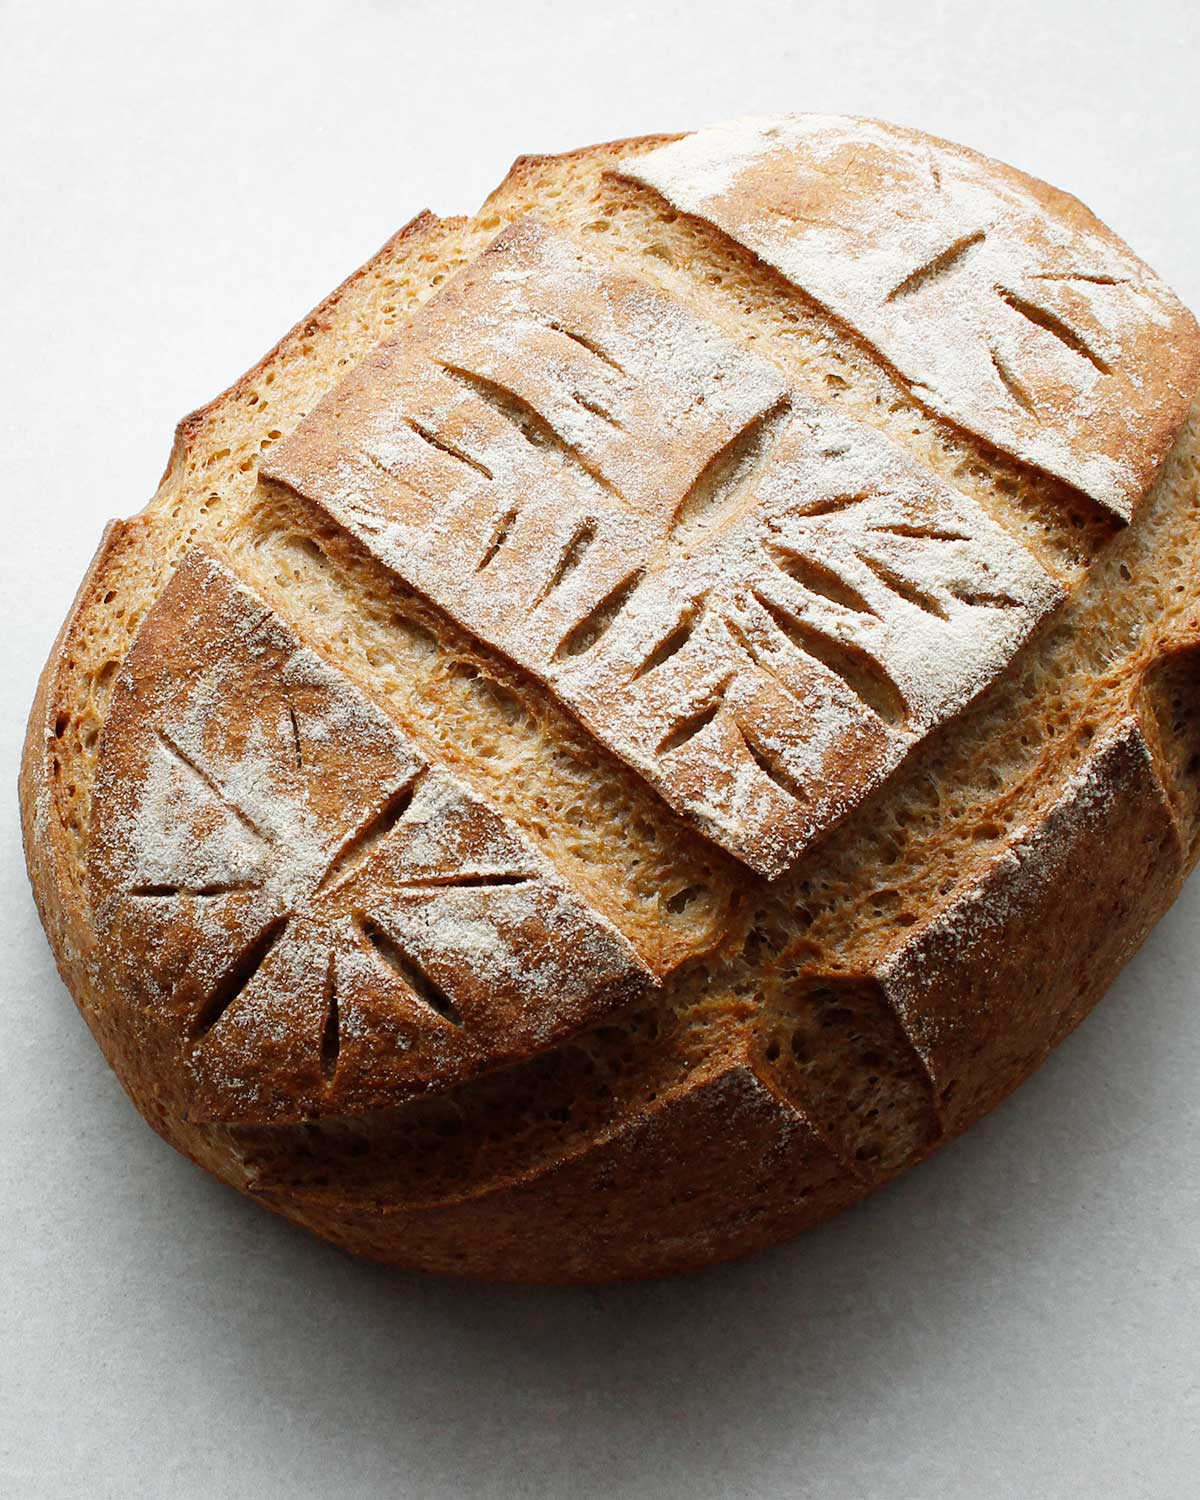 Gluten-free sourdough bread scoring